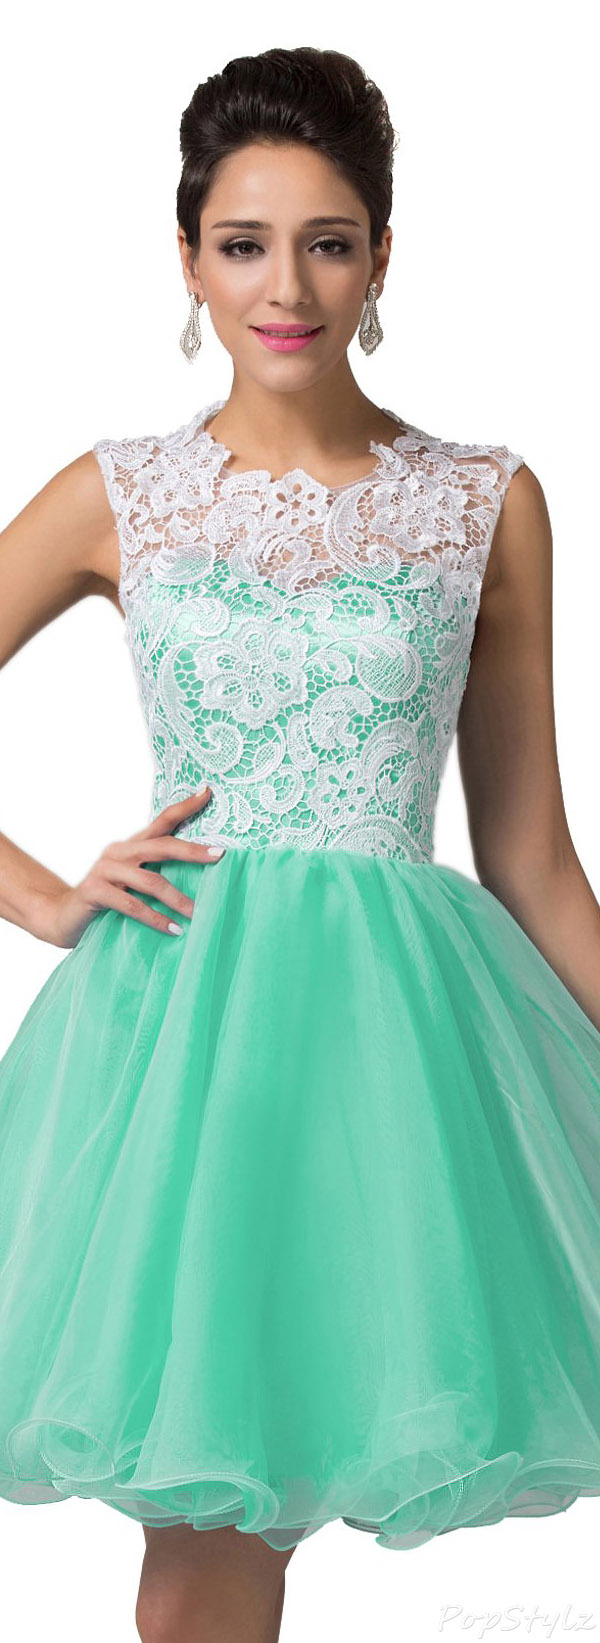 Grace Karin CL6123-5 Dress with Lace Bodice & Tulle Skirt